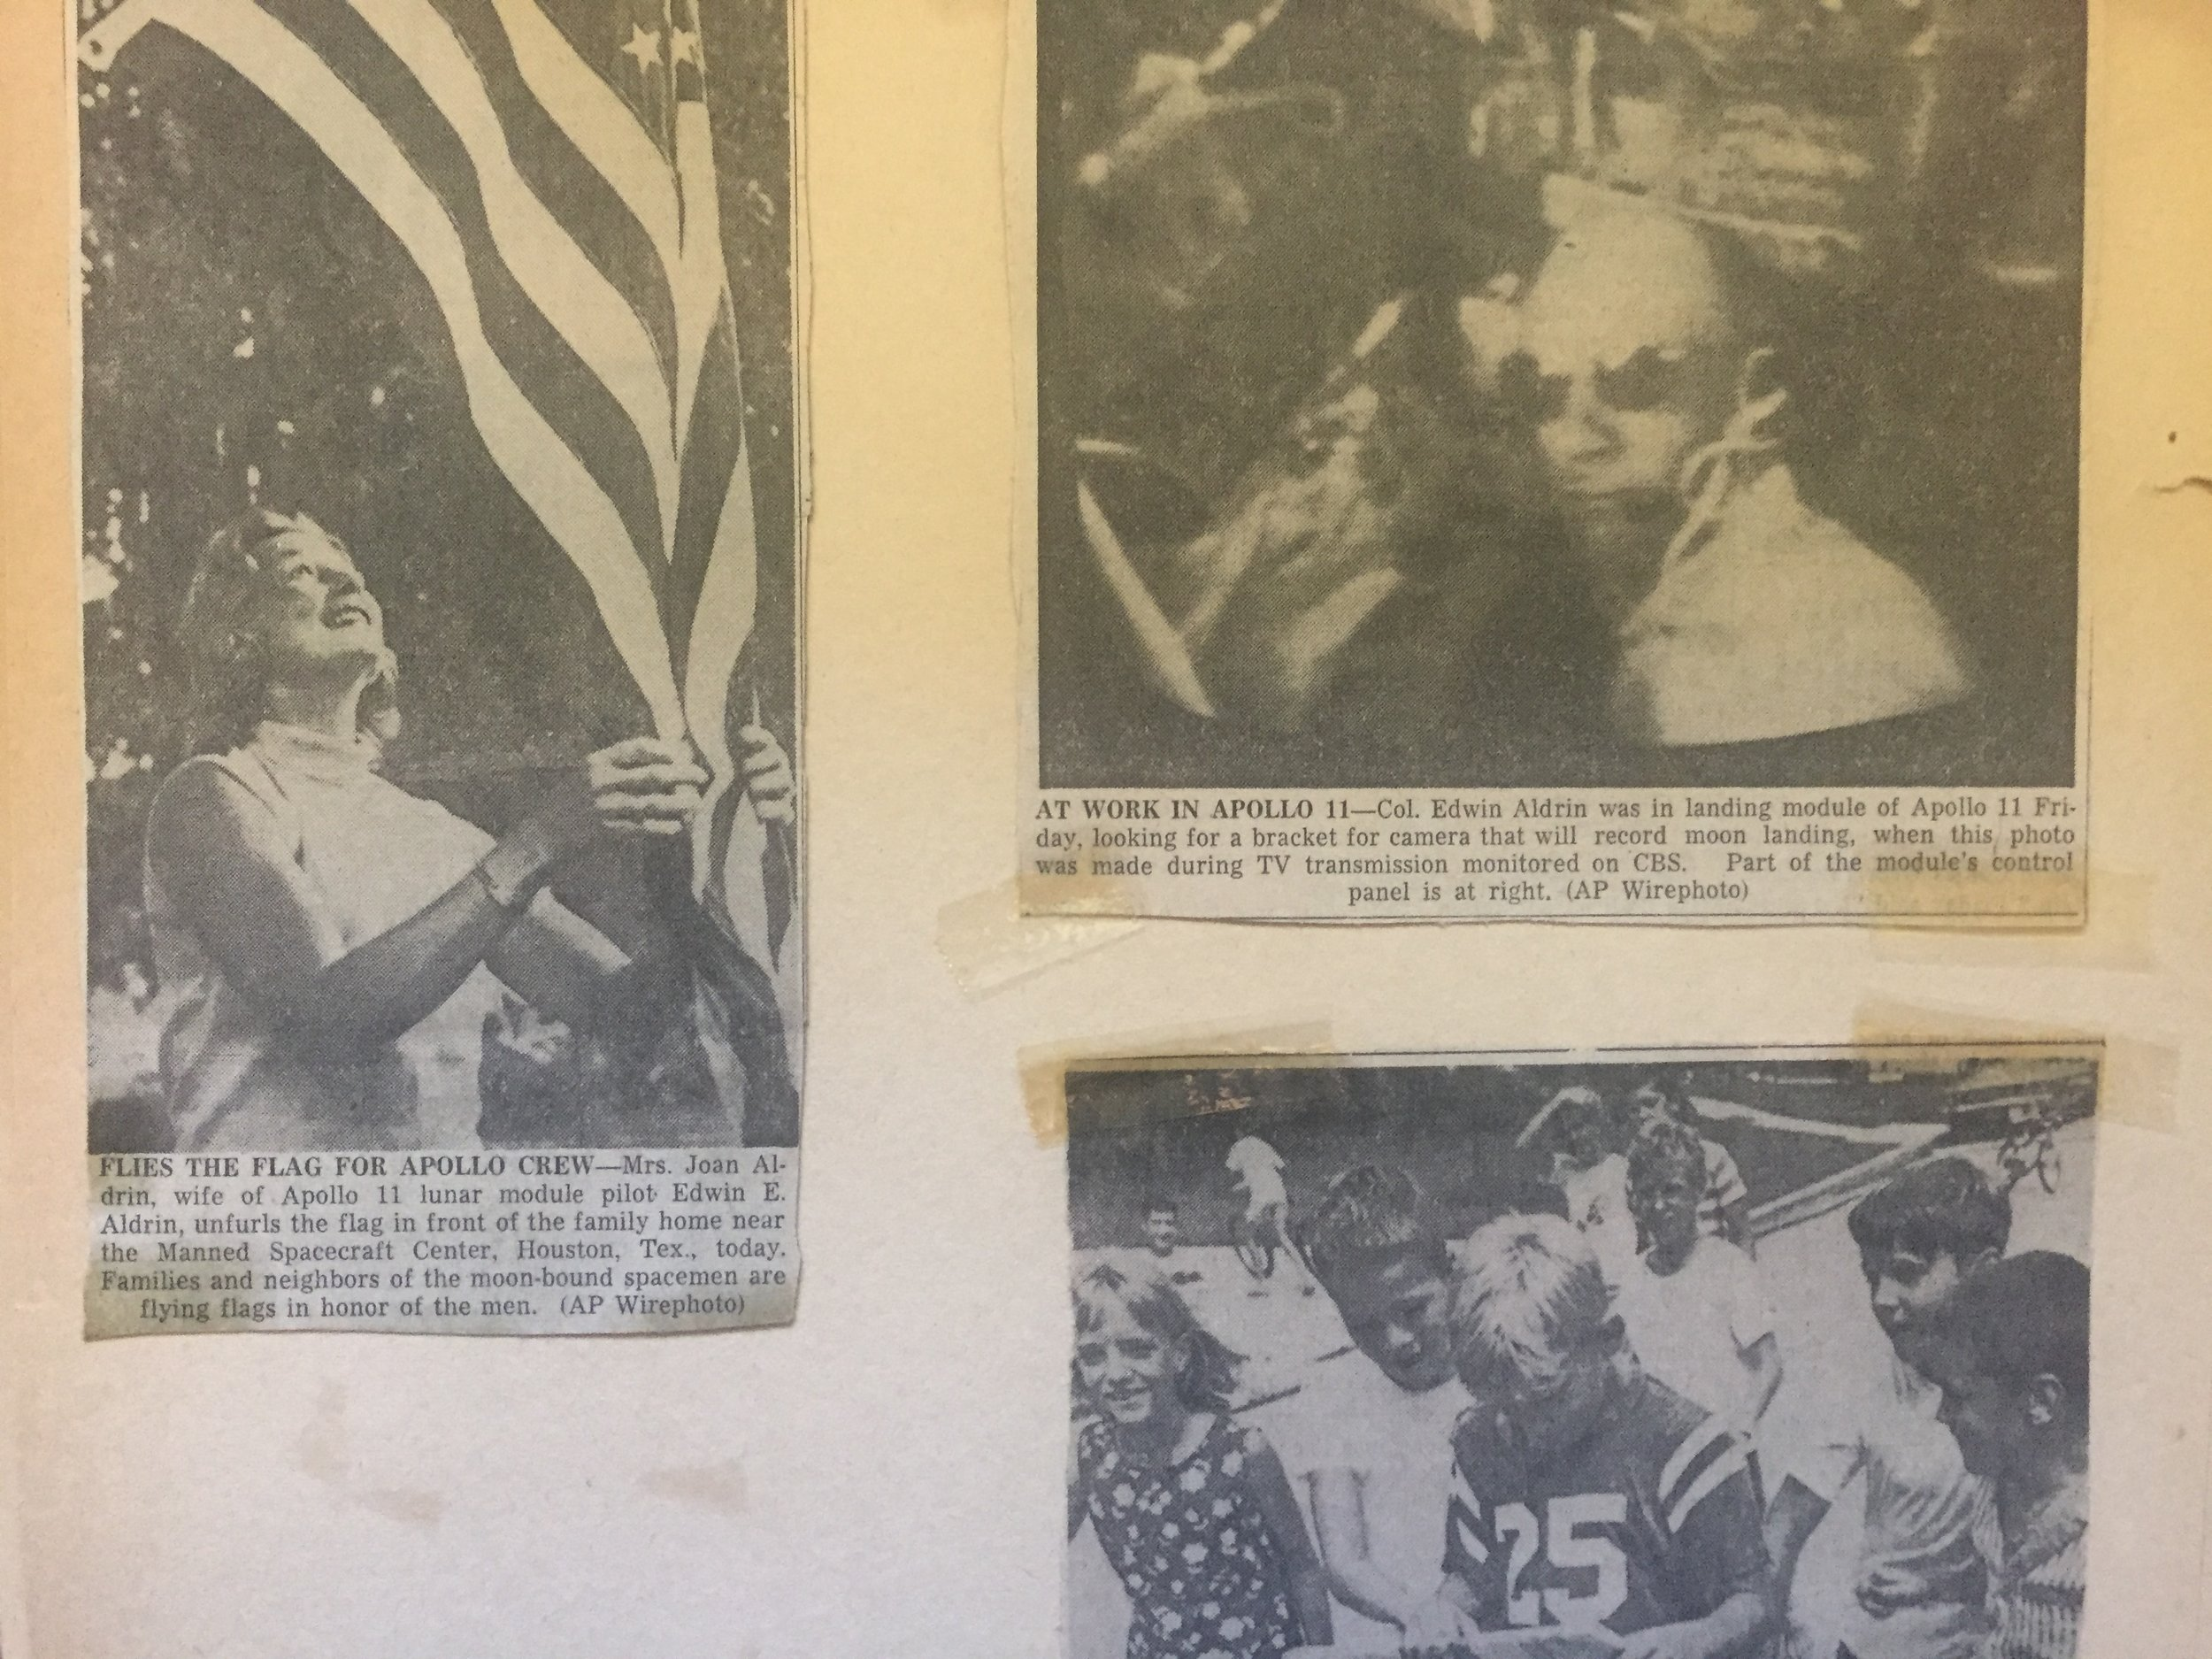 Aldrin family Caption: Photos clipped from newspapers featuring Astronaut Buzz Aldrin and family.